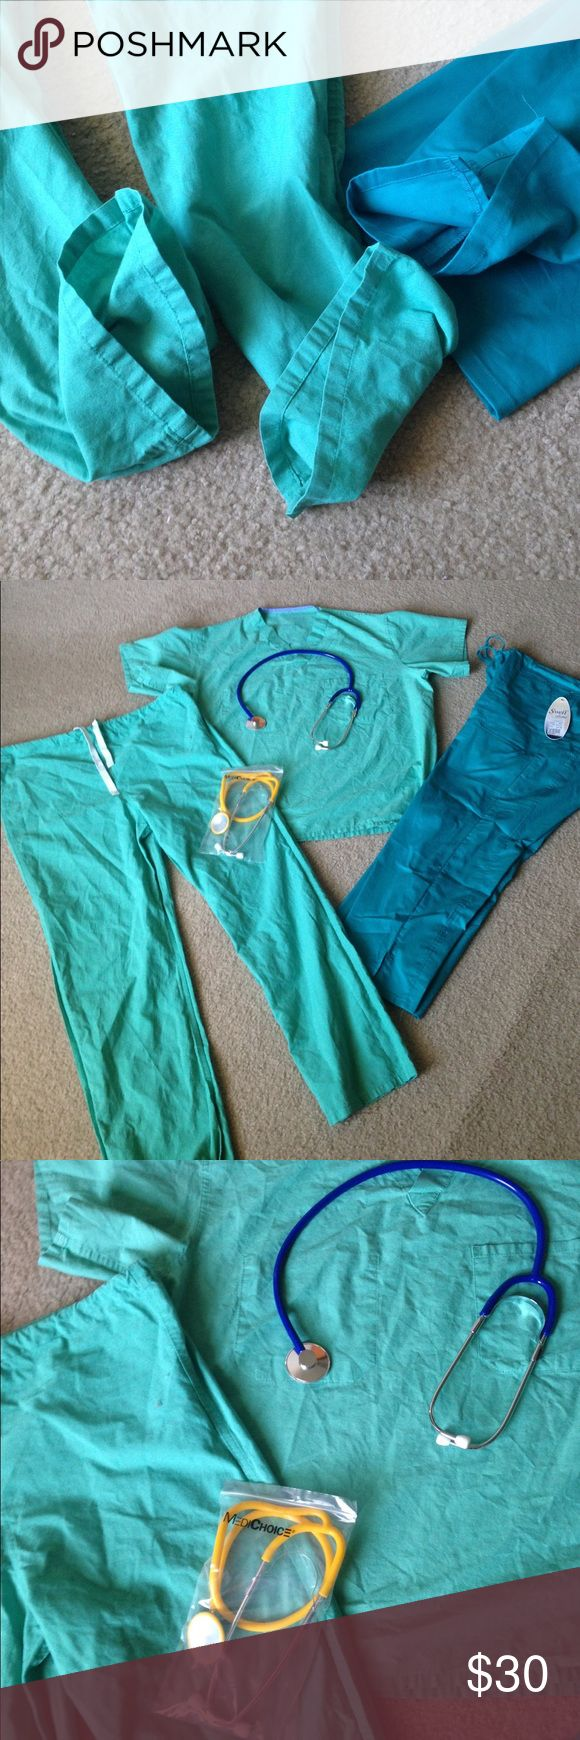 Scrubs Set Medical Scrubs, 1 complete set from Med Line, size small, petite. No holes, rips or stains. 1 pocket removed though on front of shirt, and on back of pants. 2 brand new stethoscopes, 1 yellow, 1 blue. One brand new (NWT) scrub bottoms by Sanibel, size med petite. Selling complete set. Medline Other